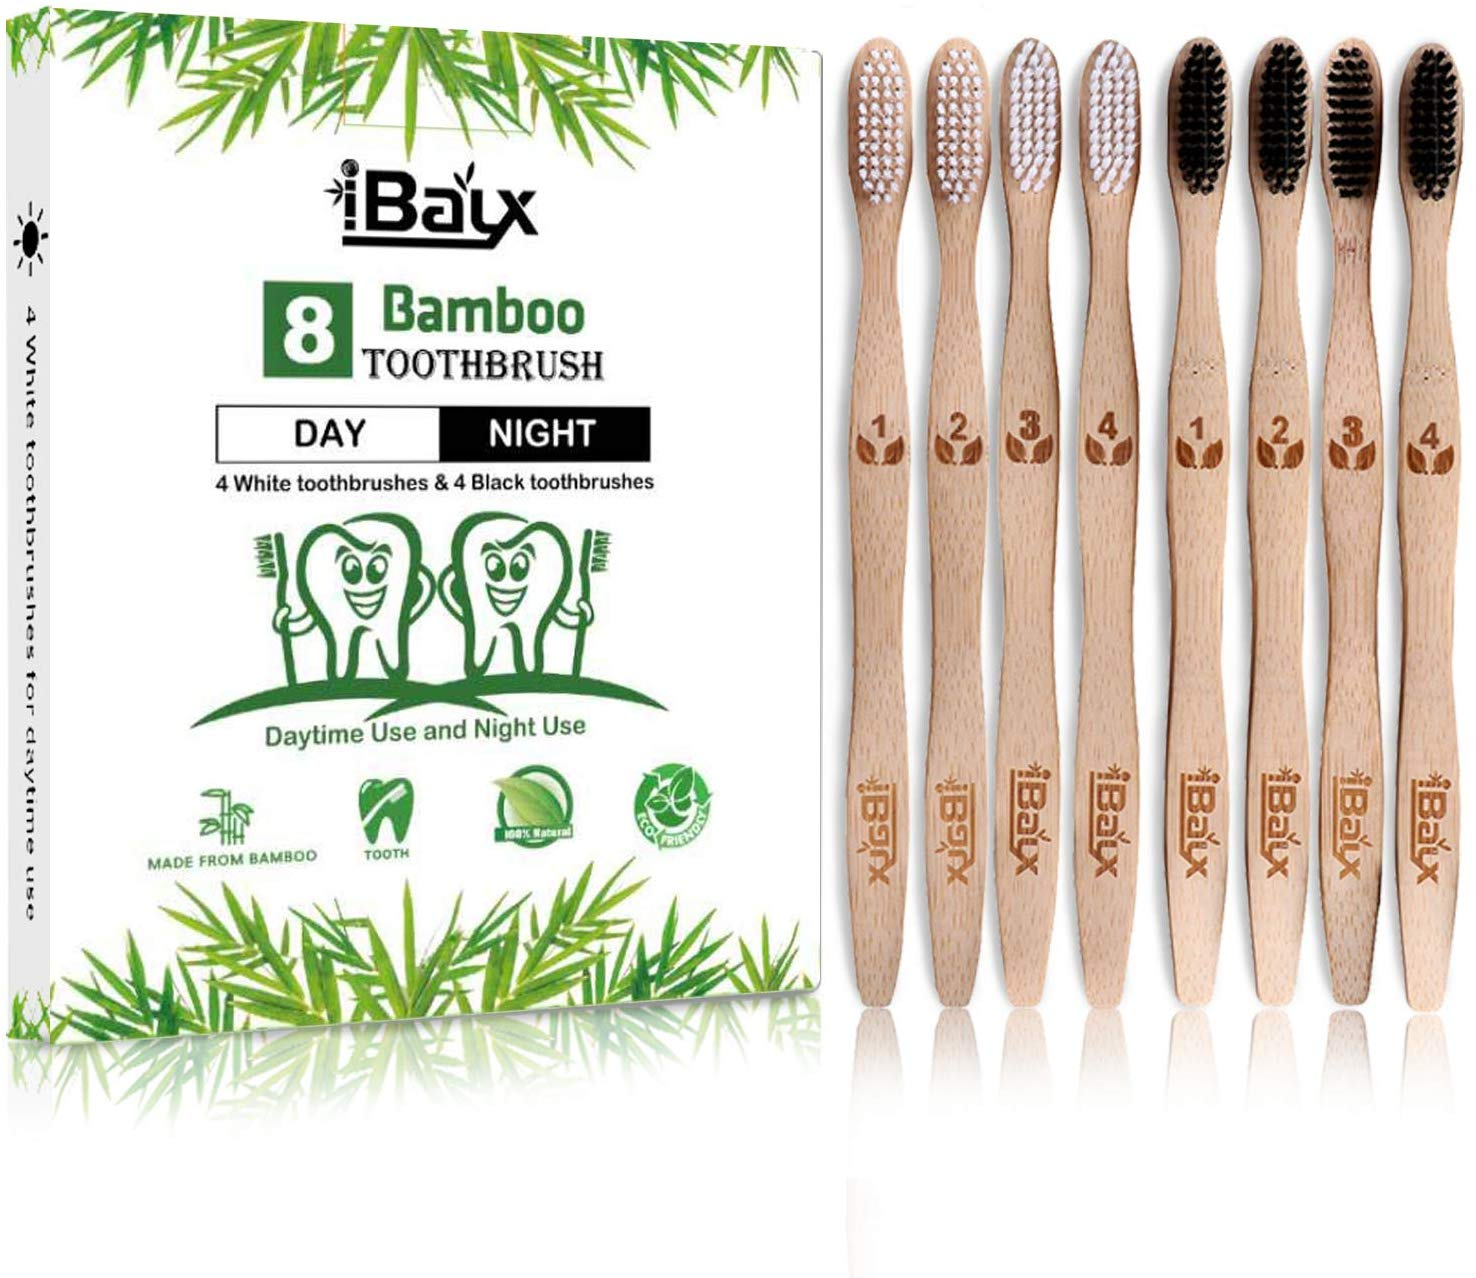 iBayx Organic Bamboo Toothbrushes – Medium Soft Bristles Toothbrushes, Family 8 Pack